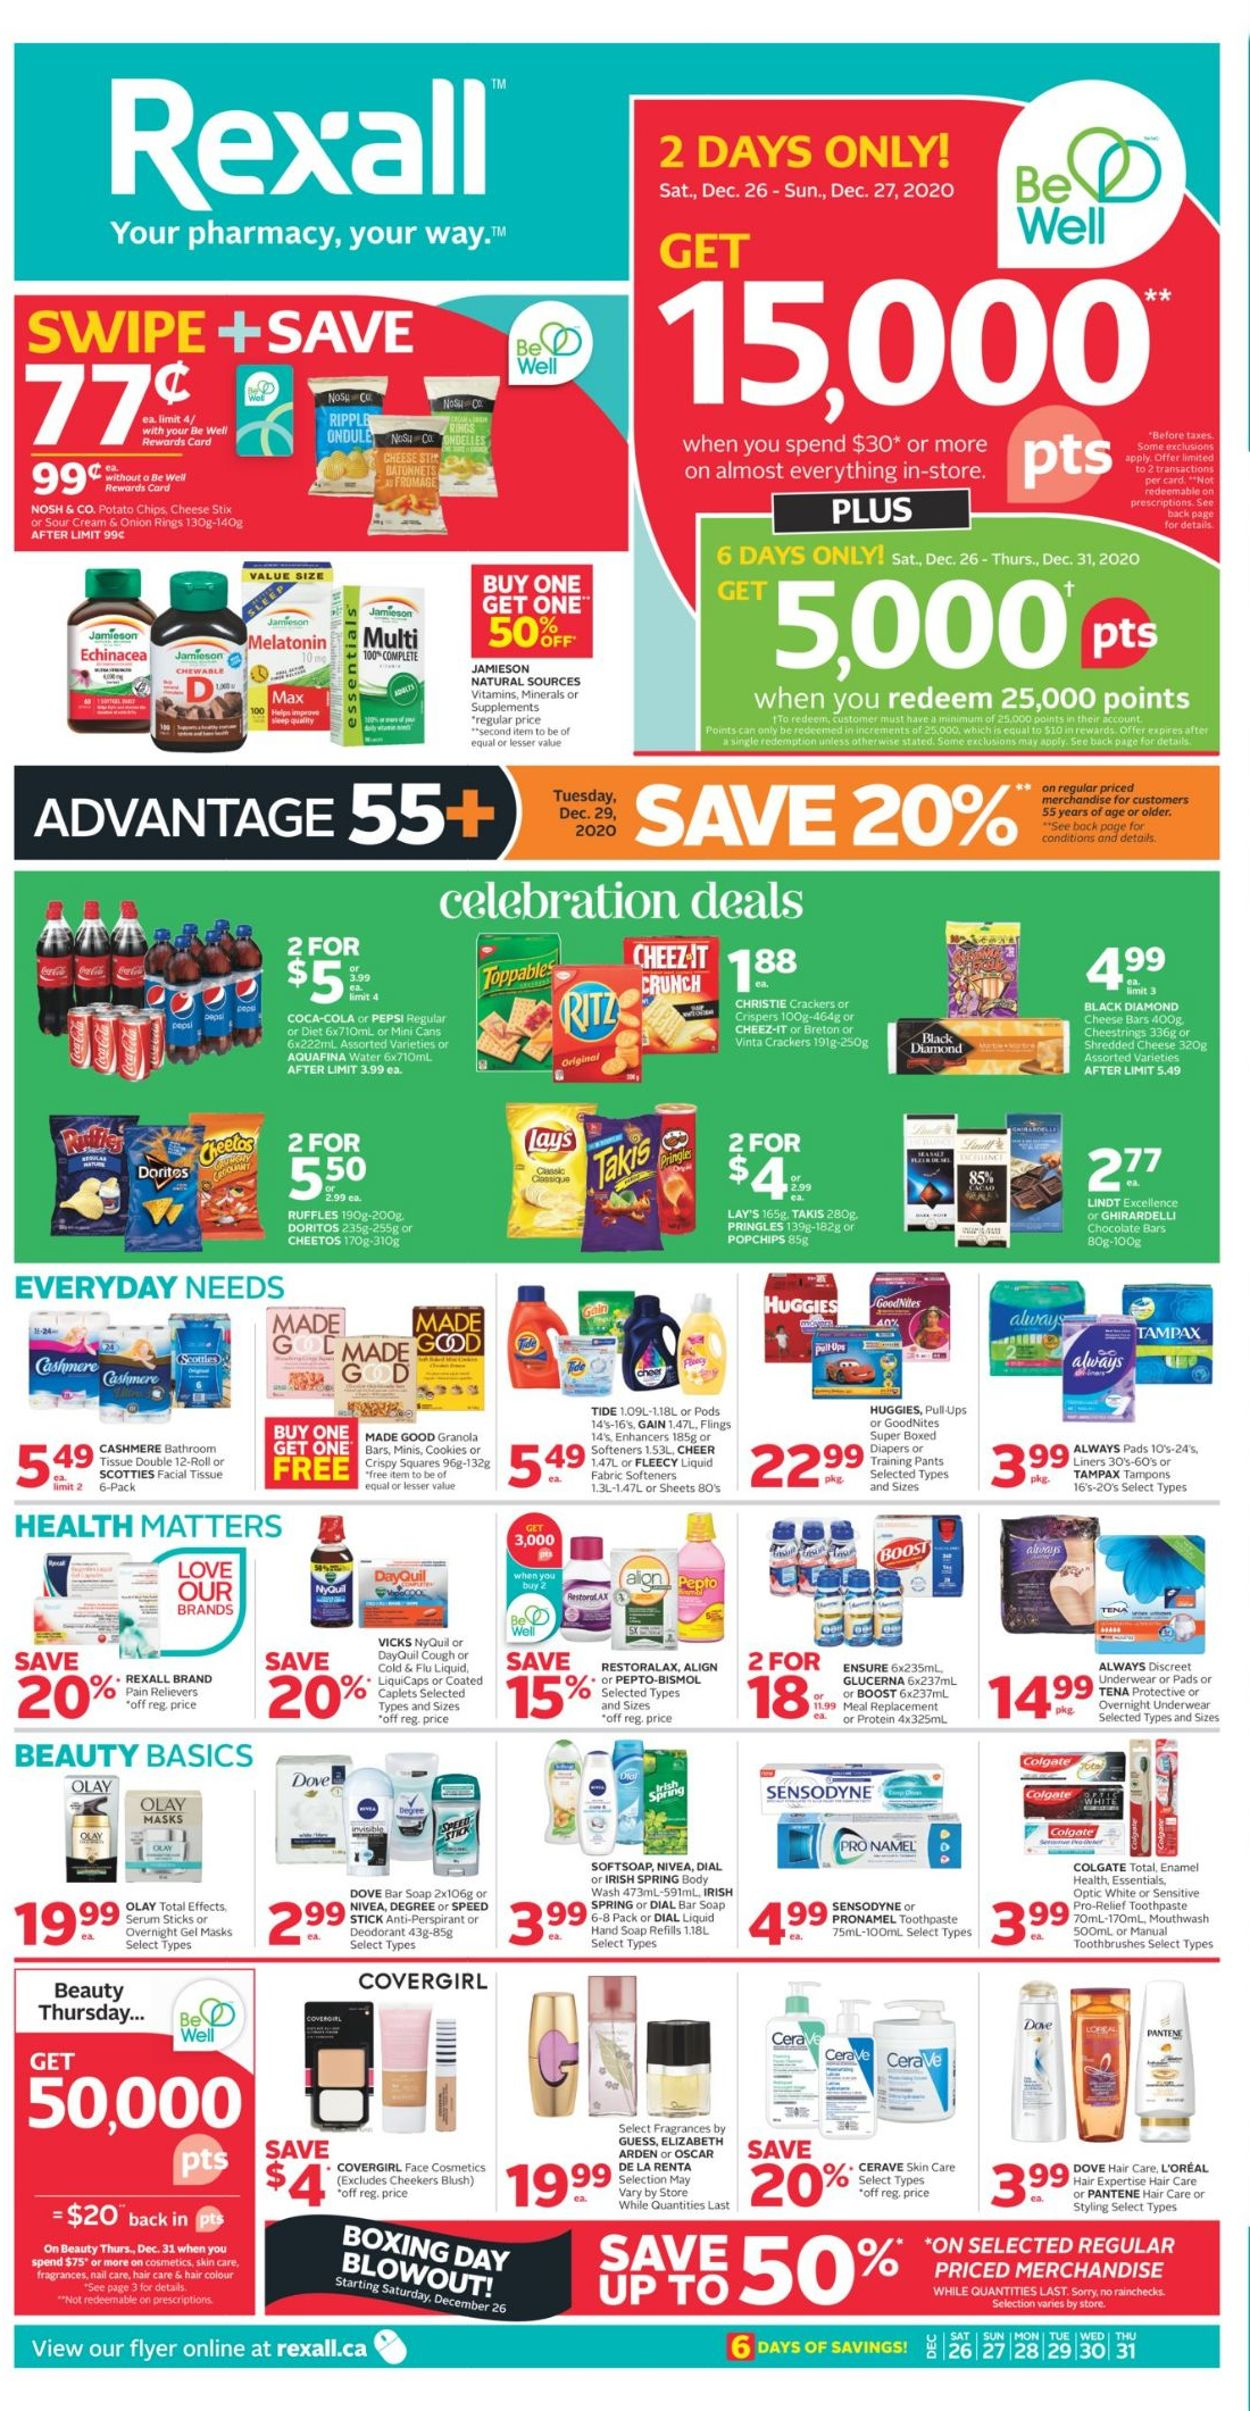 Rexall - Holiday 2020 Flyer - 12/26-12/31/2020